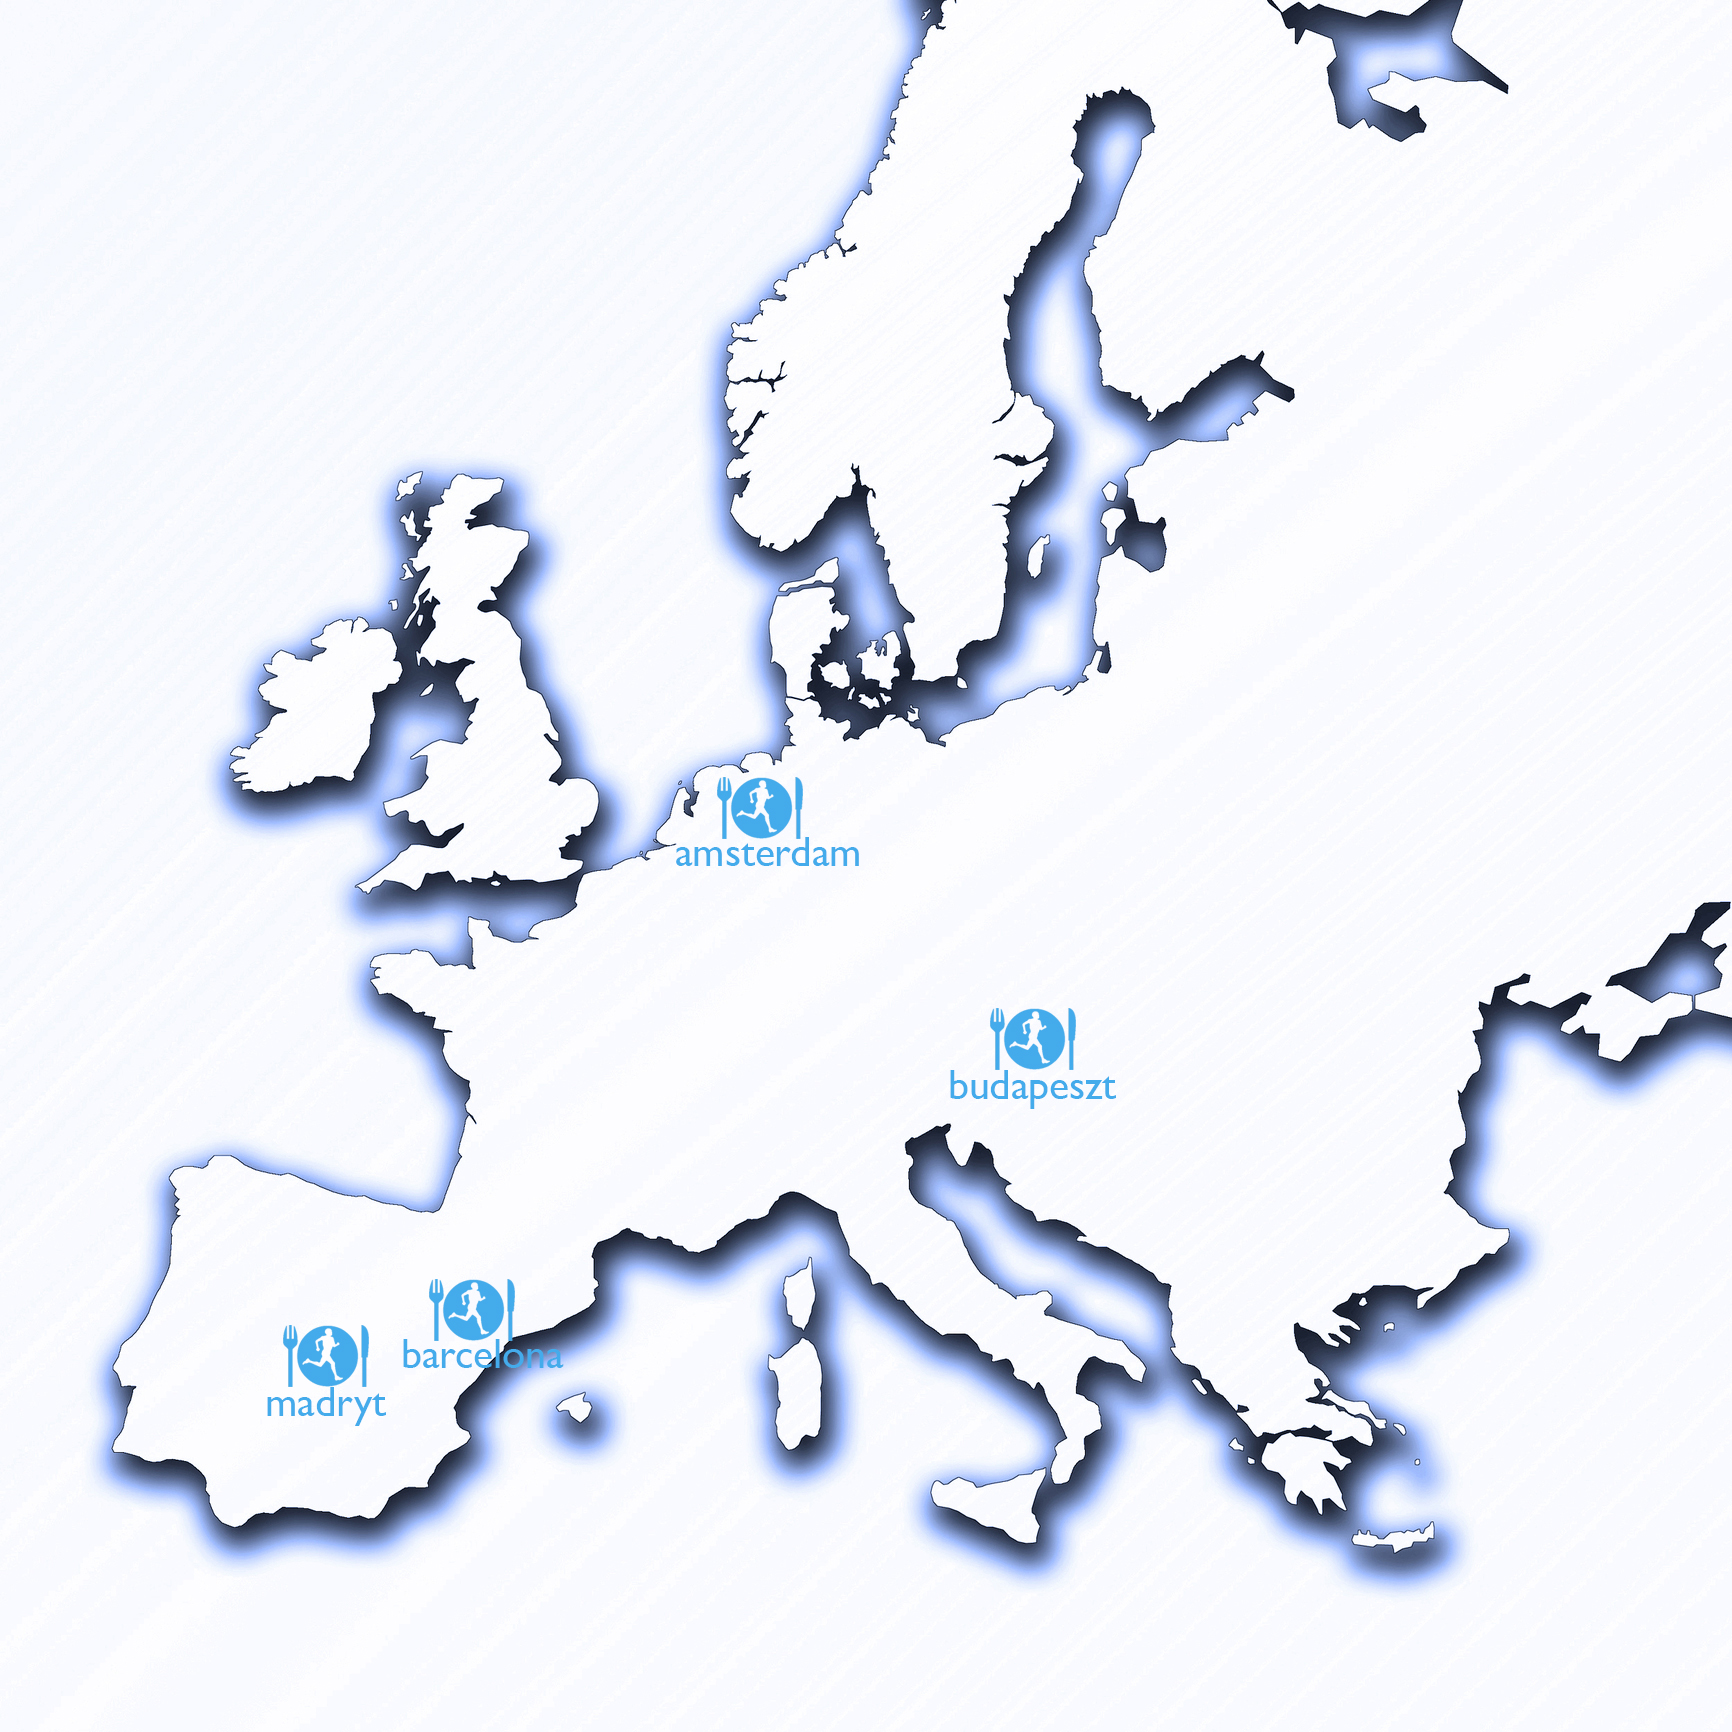 http://www.dreamstime.com/stock-photography-europe-outline-image969722